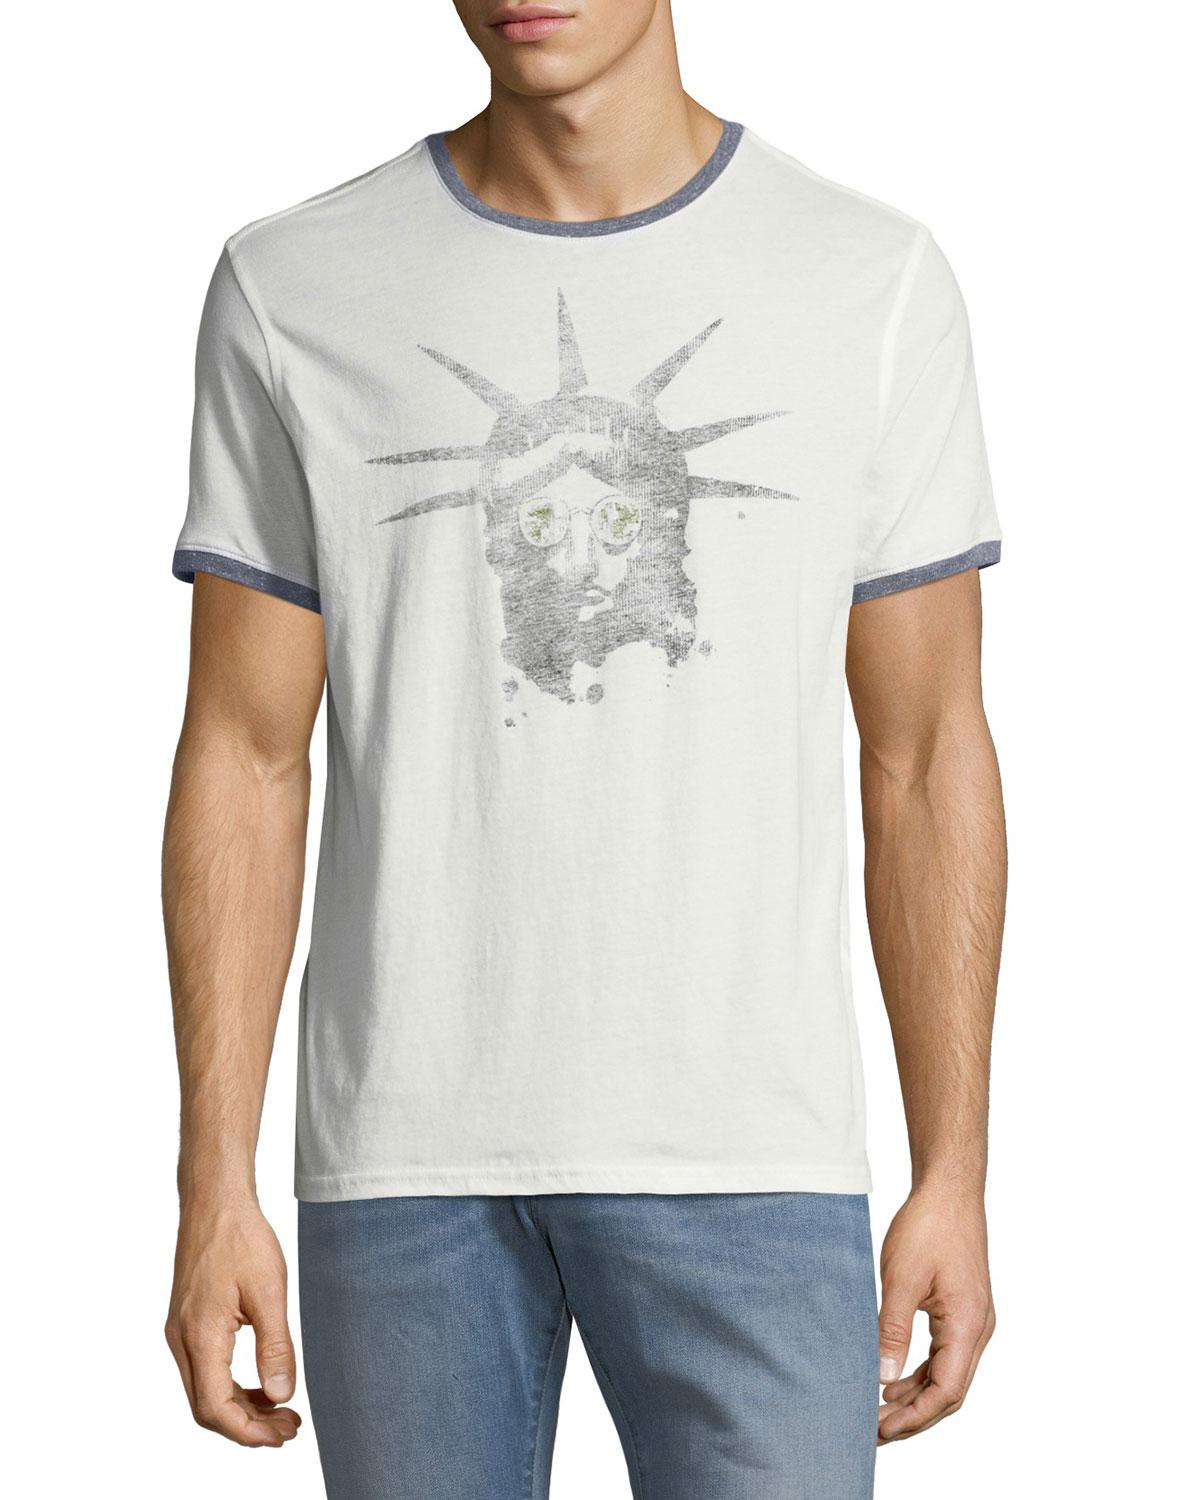 09702dba1 John Varvatos John Lennon-Print Cotton T-Shirt In White | ModeSens